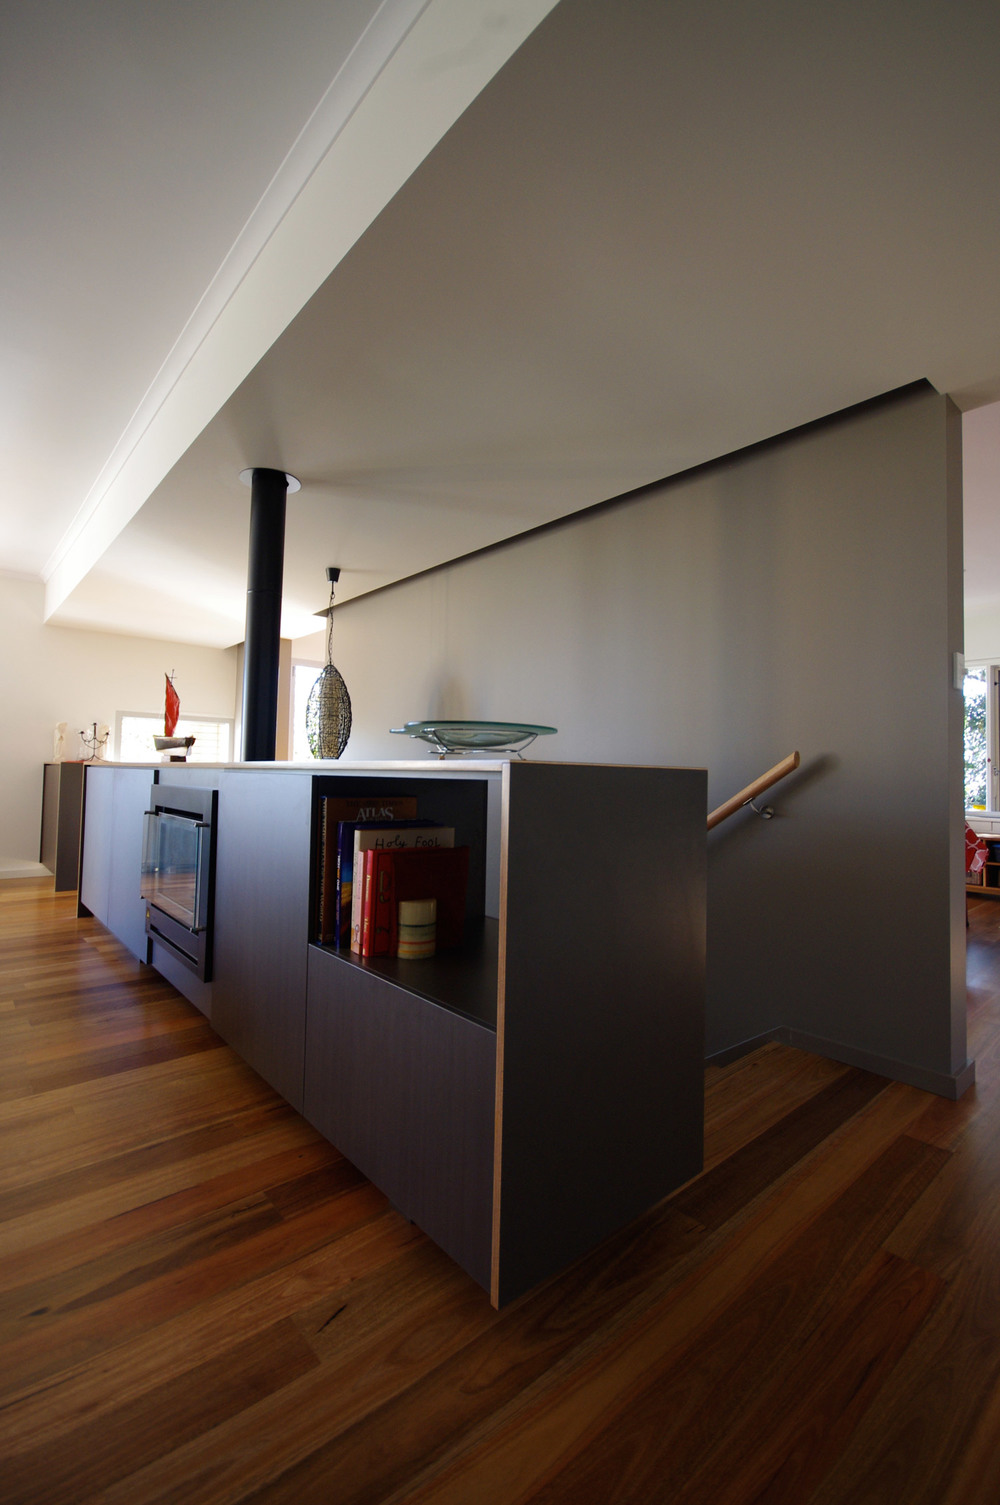 #adelaidehome #extension #khabarchitects #hidden #secret #blendedhome #adelaidehouse #awardwinningarchitecture #apartment  #architect #architecturelovers #architect #architecturephotography #architectureporn #architects #architectural #architecturelover #architecturestudent #architecturalphotography #architecturedesign #architectanddesign #architecturephoto #architecturaldesign #architectureschool #architecturaldigest #architecturesketch #architecturemodel #architectura #Architecte #architecturelife #architecturegram #architectureandpeople #architecturelove #architecturedaily #buildings #adlarchigram #courtyardhouse @adelaide_photographer #pressedtin #naturaltimber #dulux #duluxcolour #adelaide #khabarchitects #paintcolour #adelaidehouse #awardwinningarchitecture